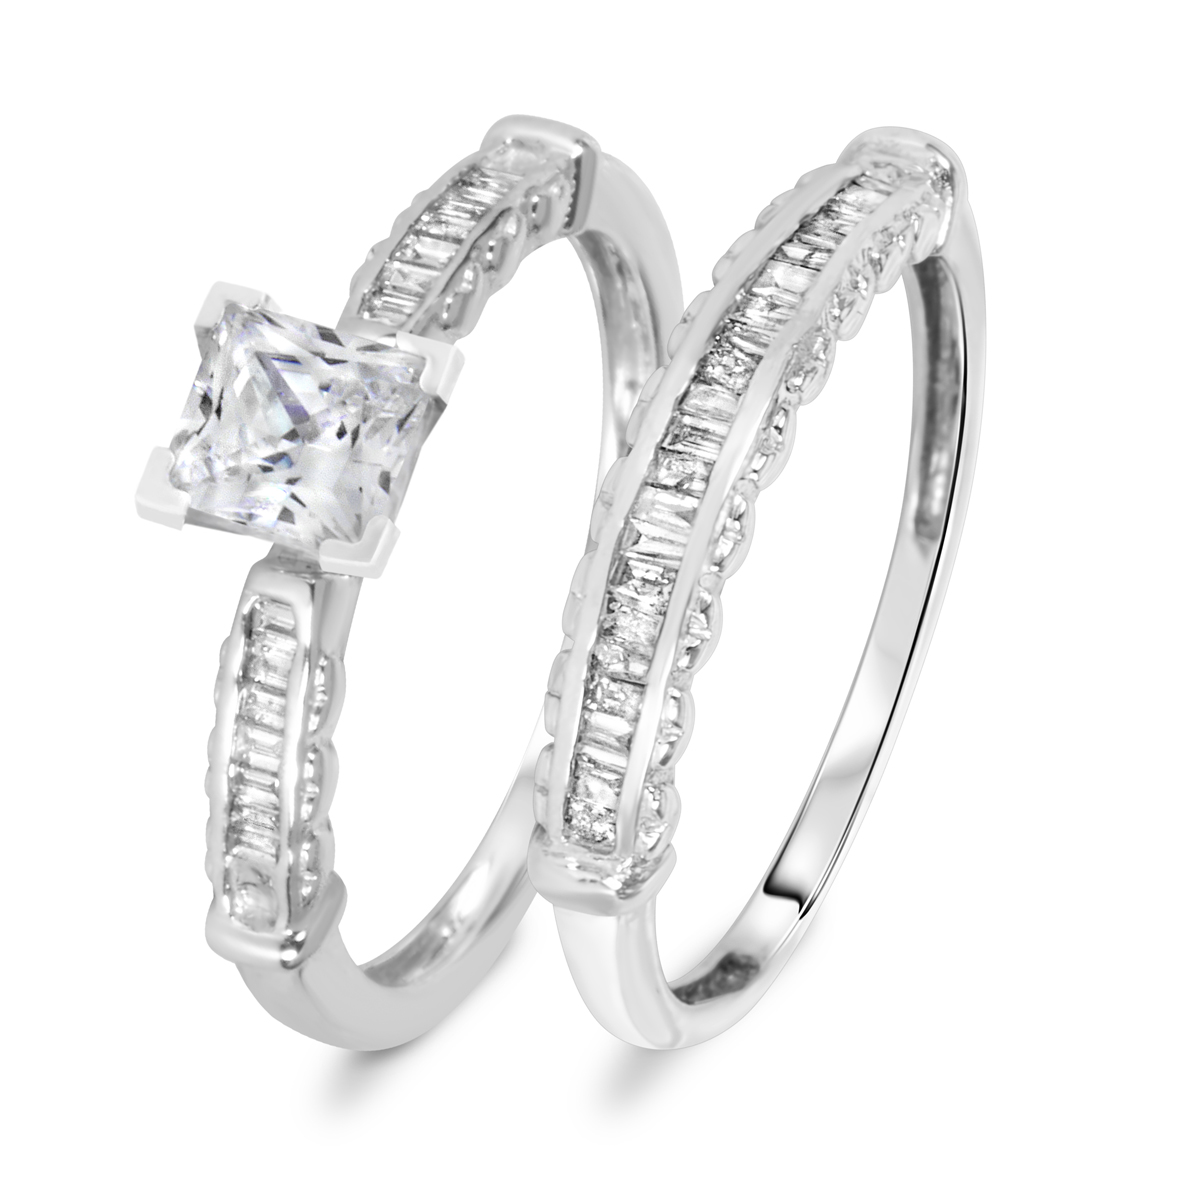 1 3/8 CT. T.W. Diamond Women's Bridal Wedding Ring Set 10K White Gold